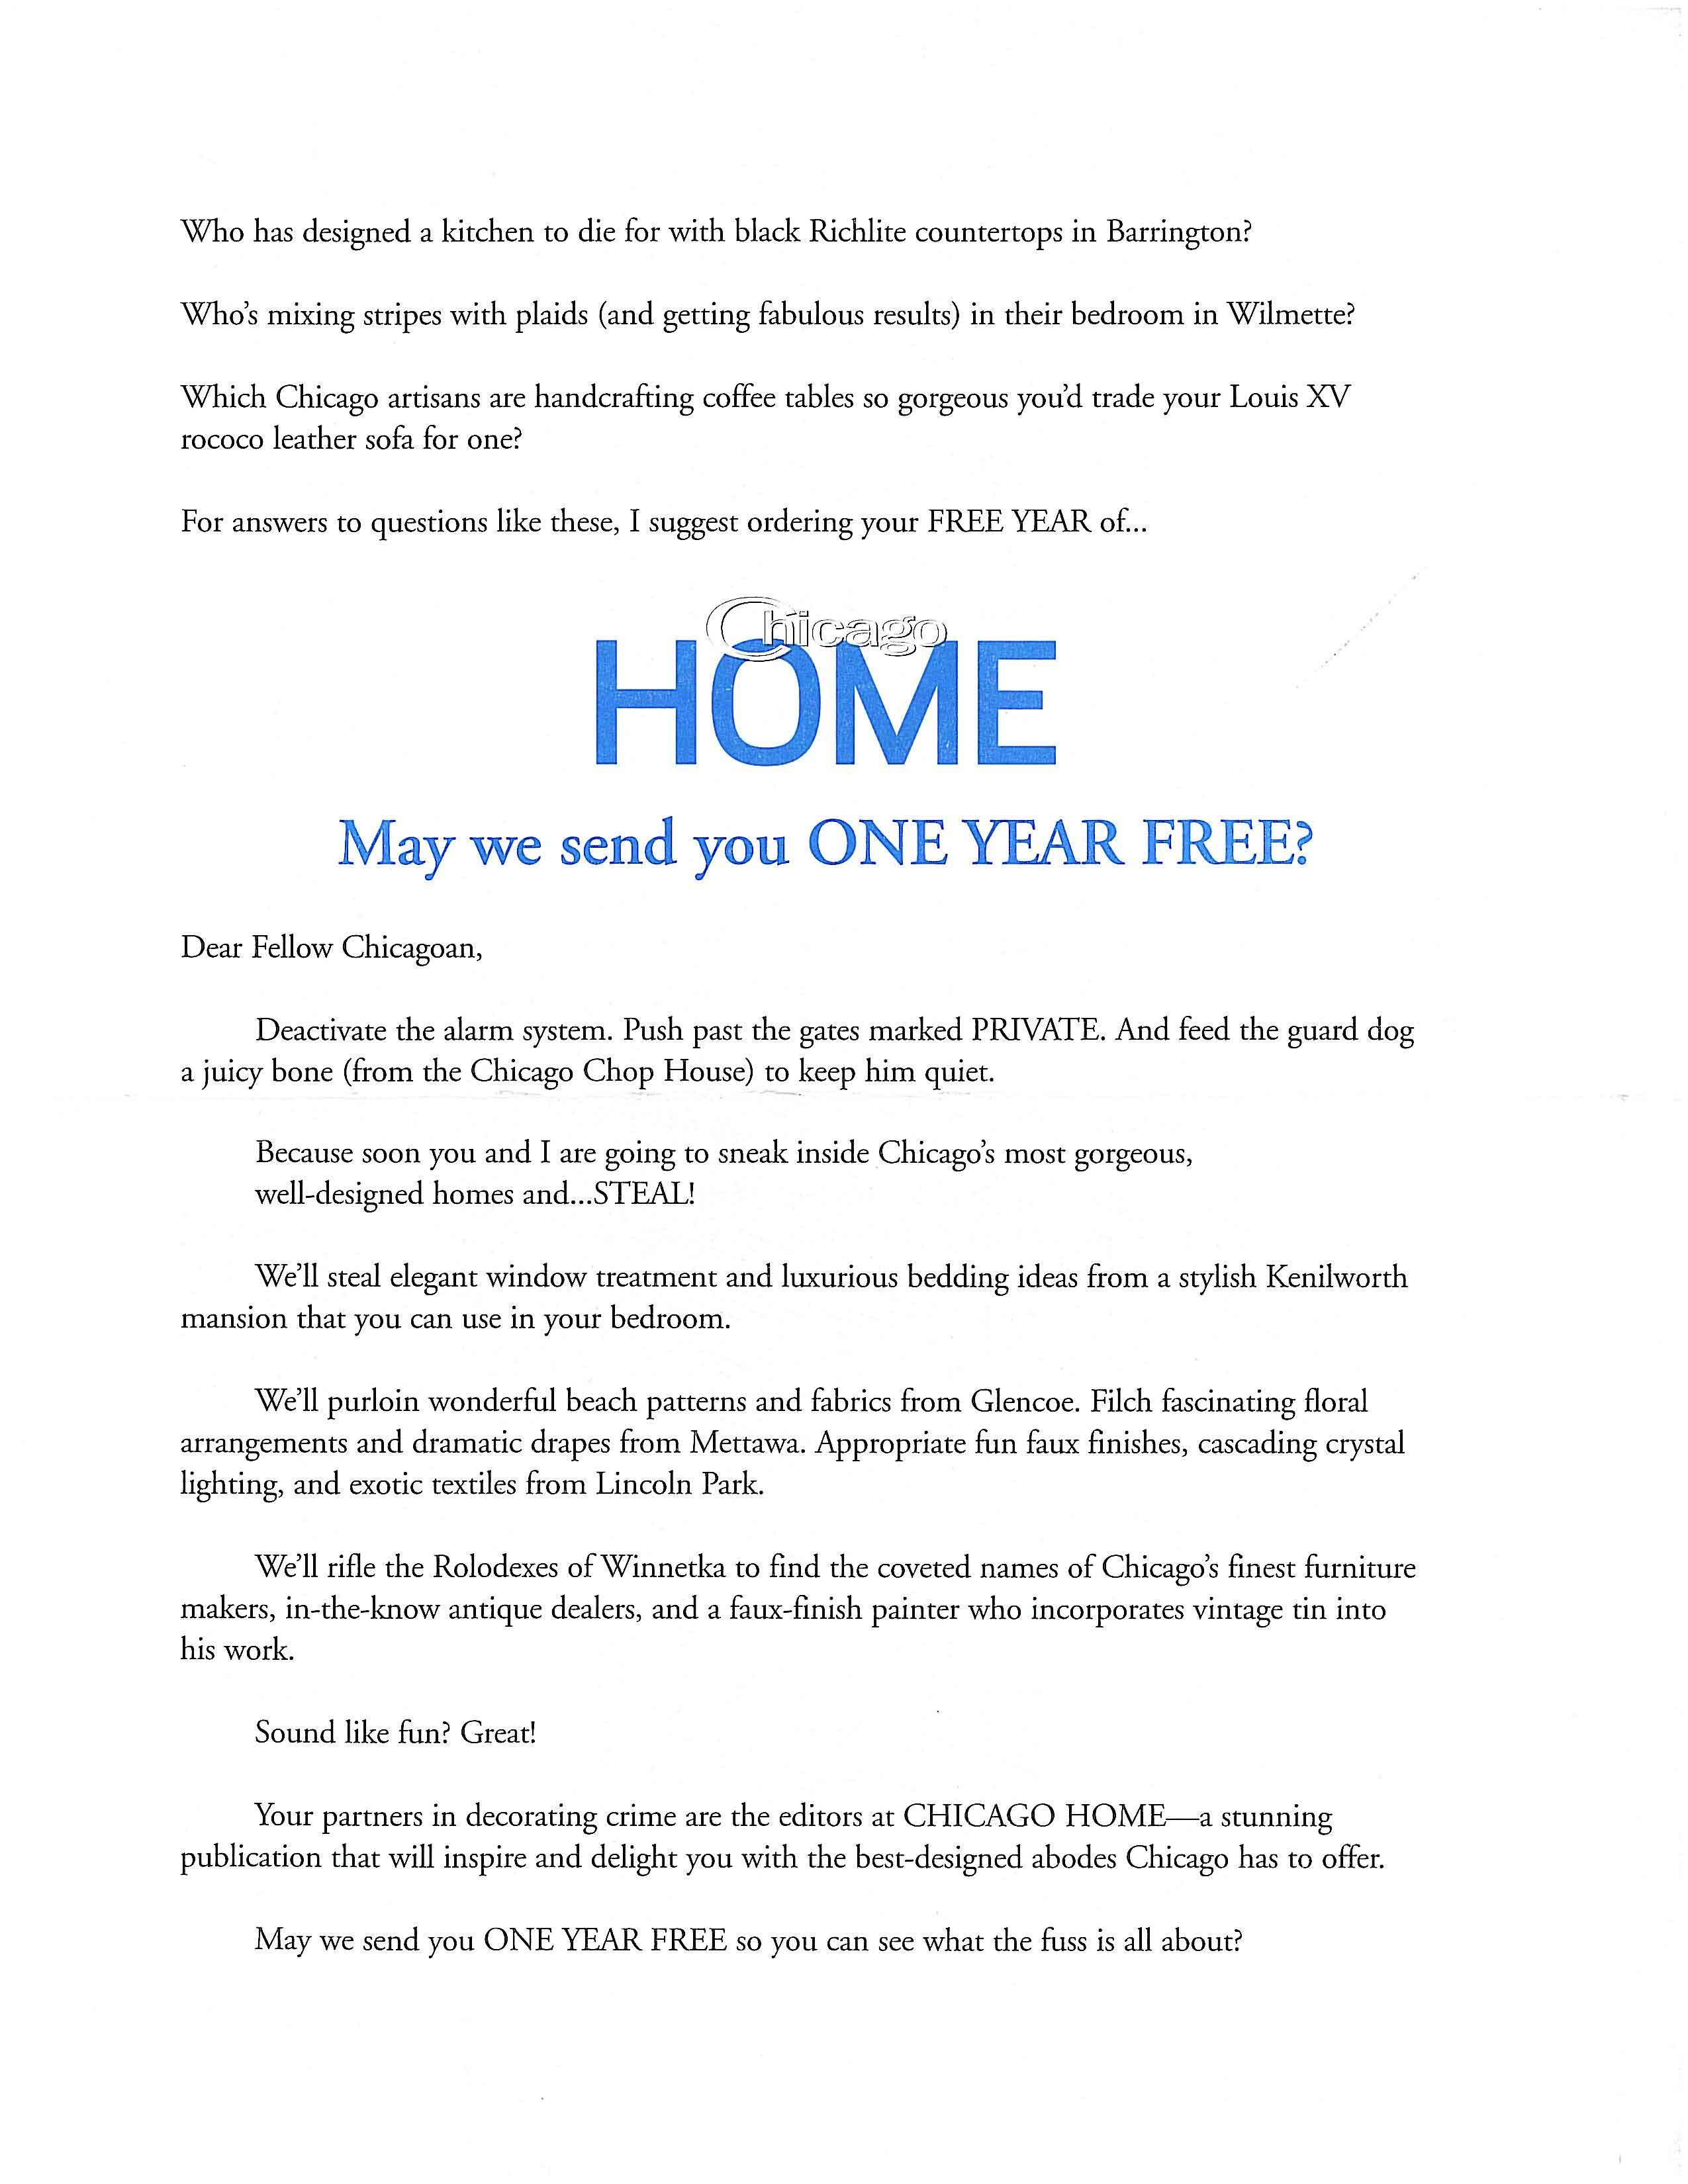 image of Chicago Home direct mail sales letter page 1